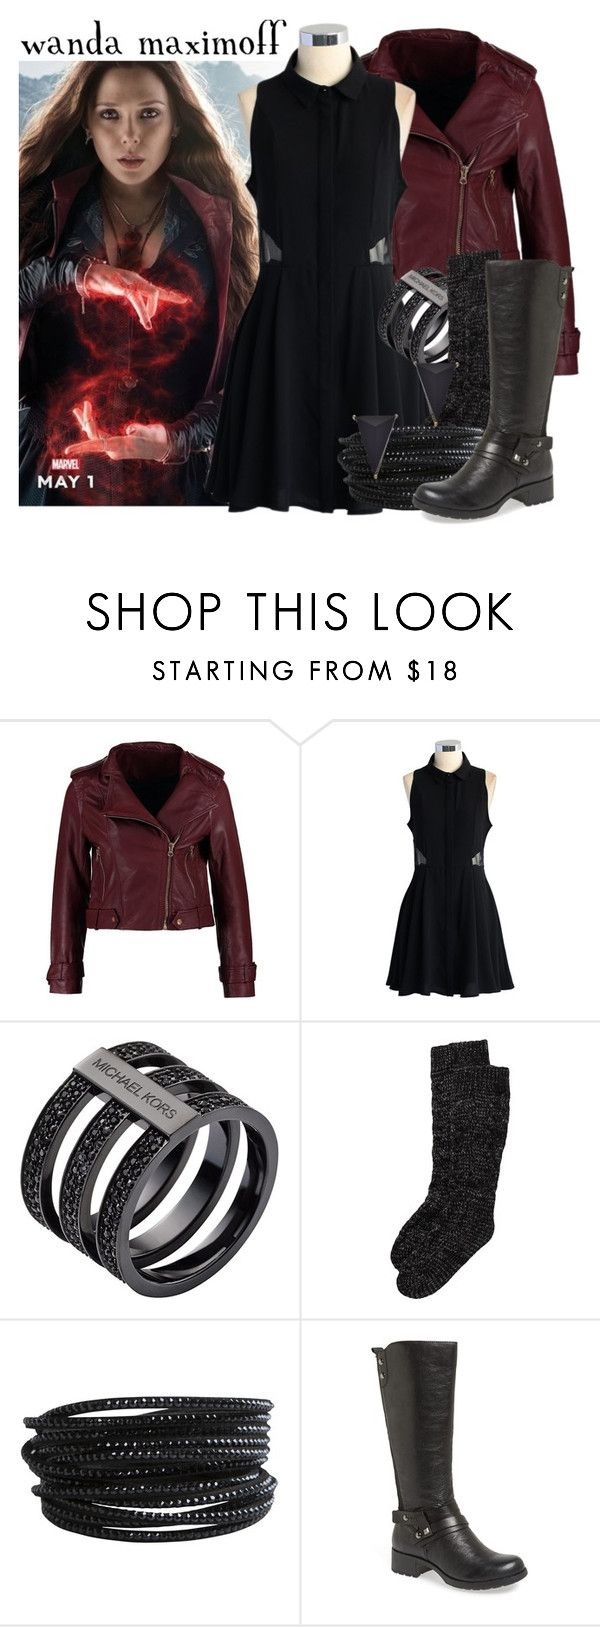 """Wanda Maximoff -- Avengers: Age of Ultron"" by evil-laugh ❤ liked on Polyvore featuring Kookaï, Chicwish, Michael Kors, Rut&Circle, Pieces, Earth and Blu Bijoux"